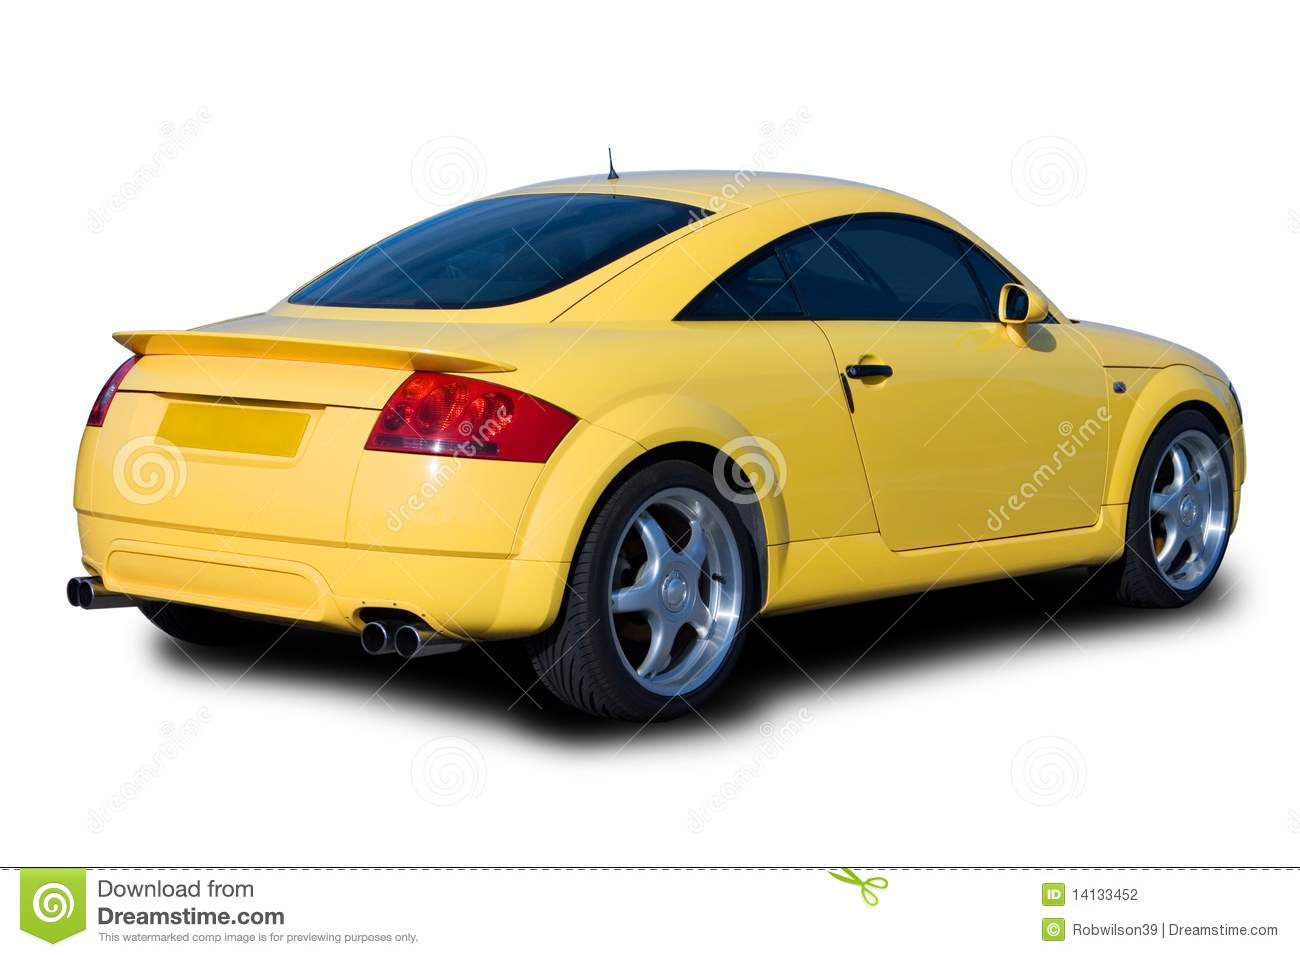 vehicle yellow sports car - photo #20